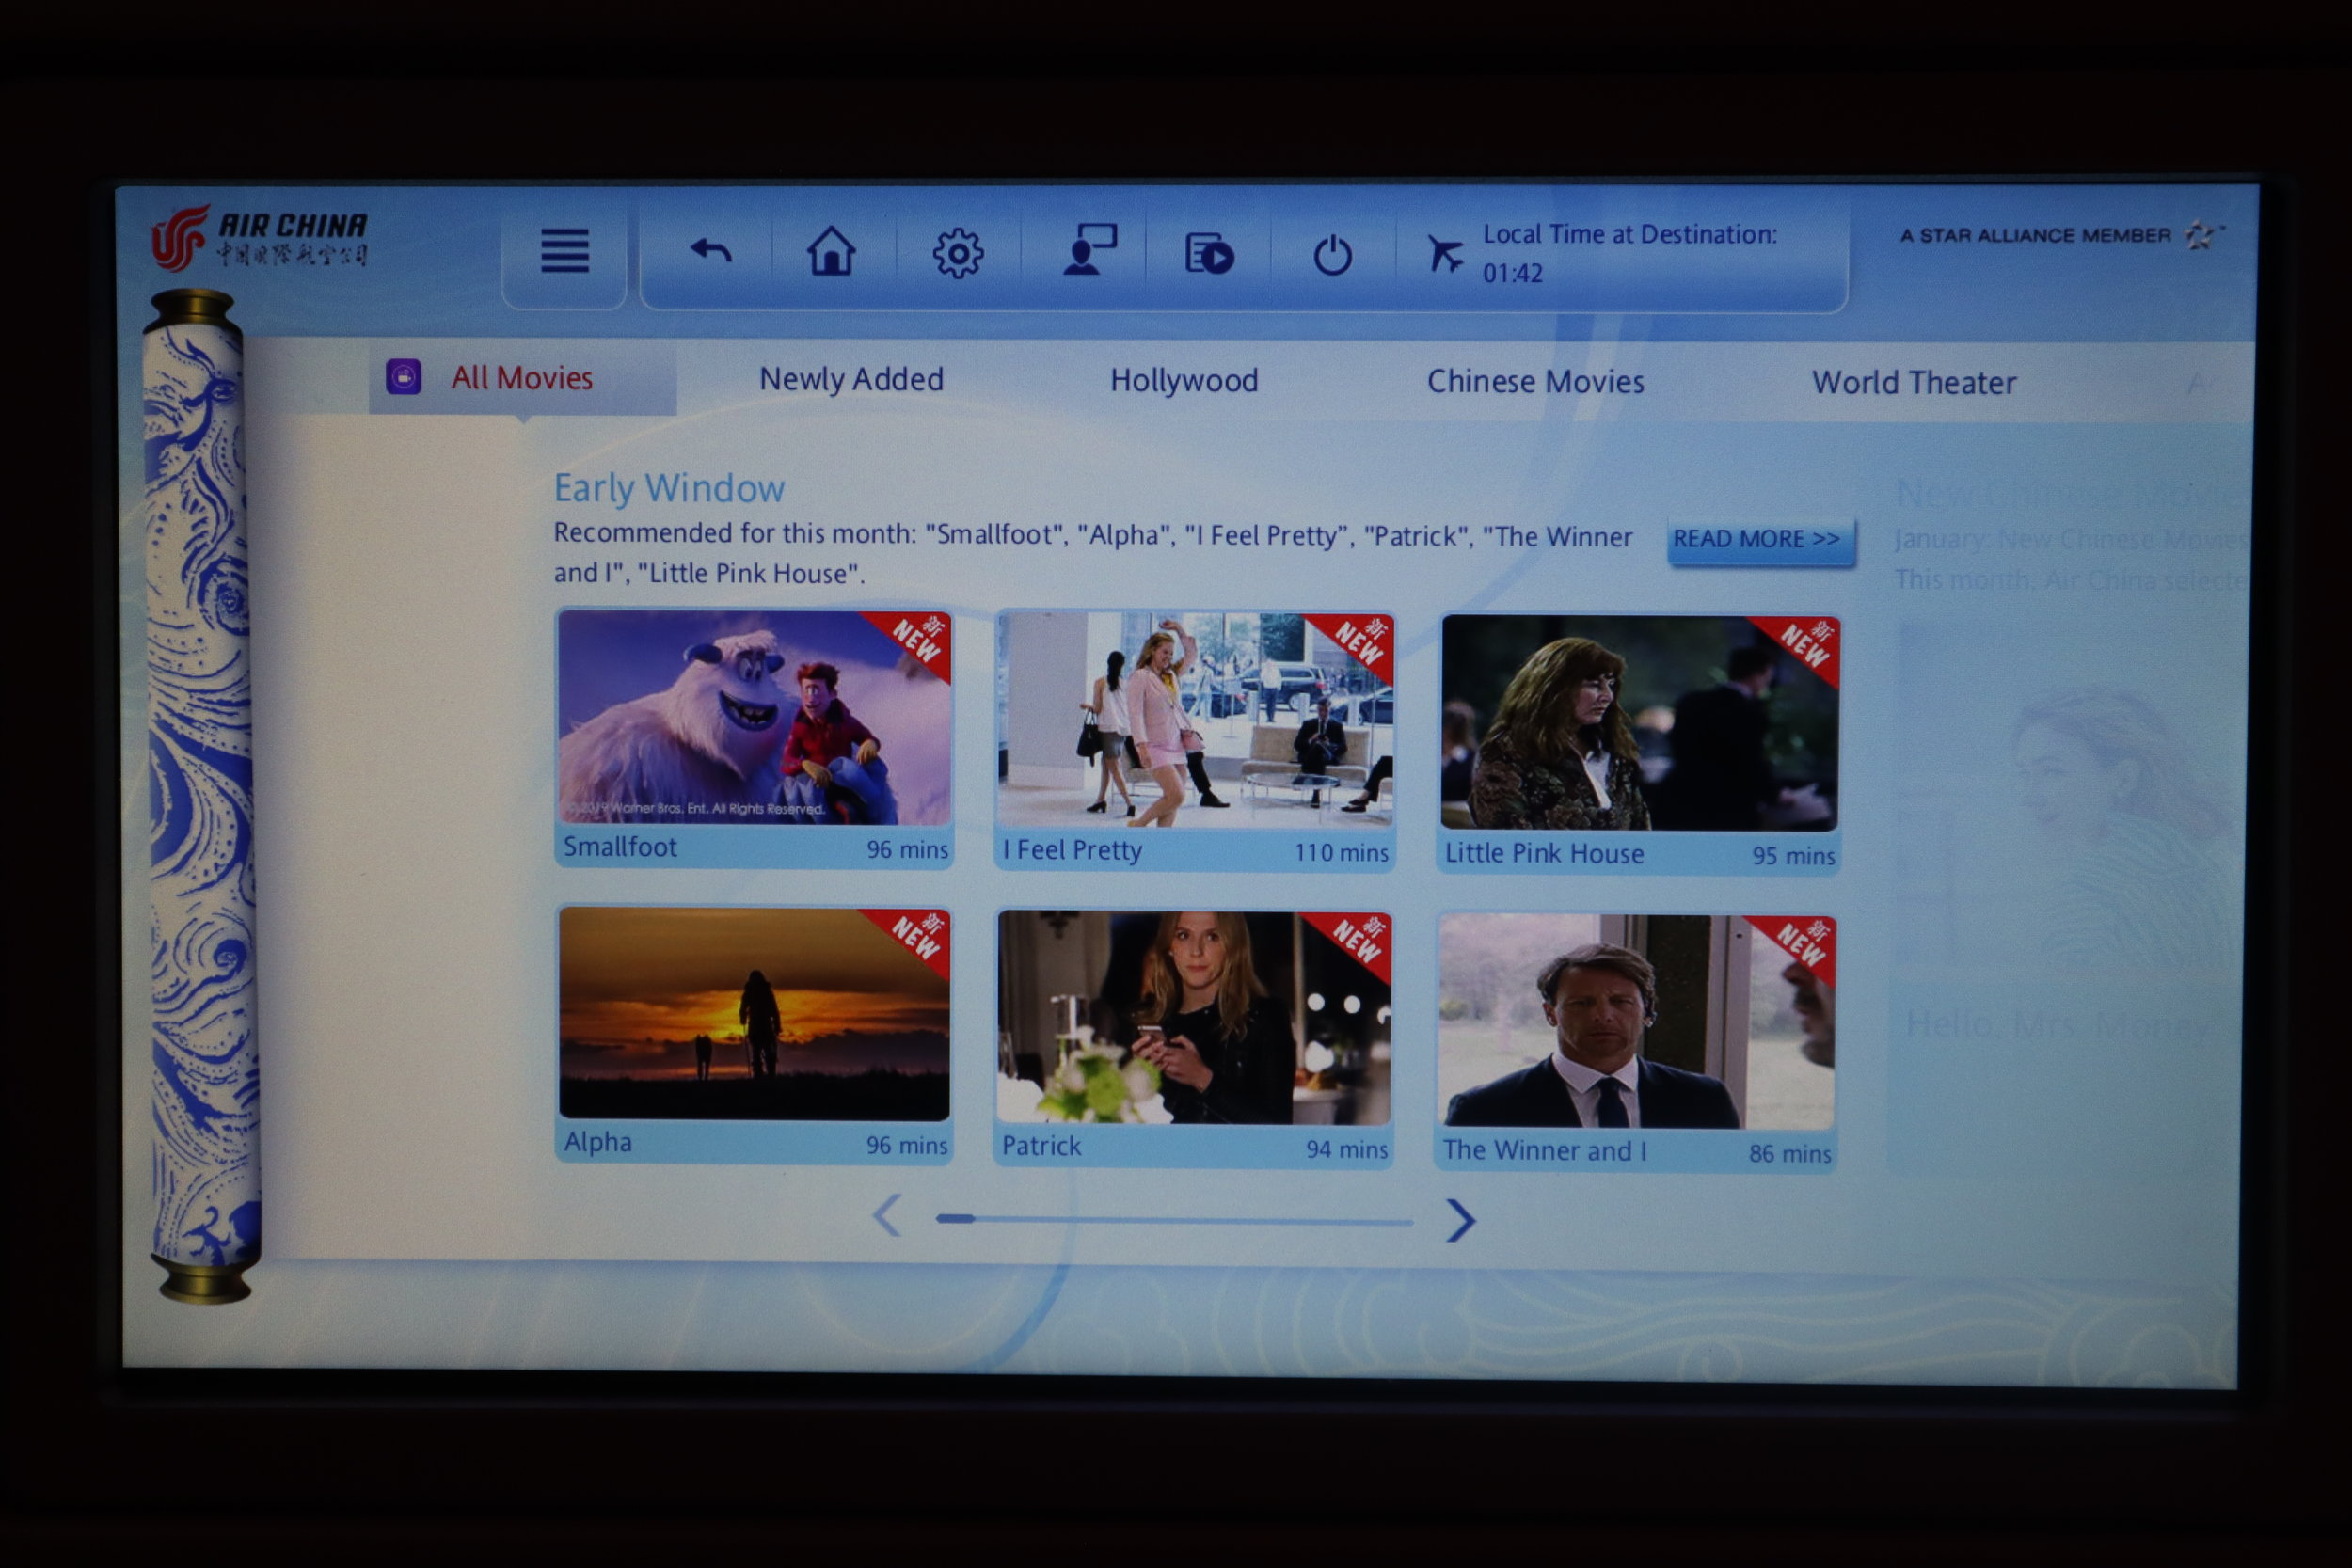 Air China business class – Movie selection